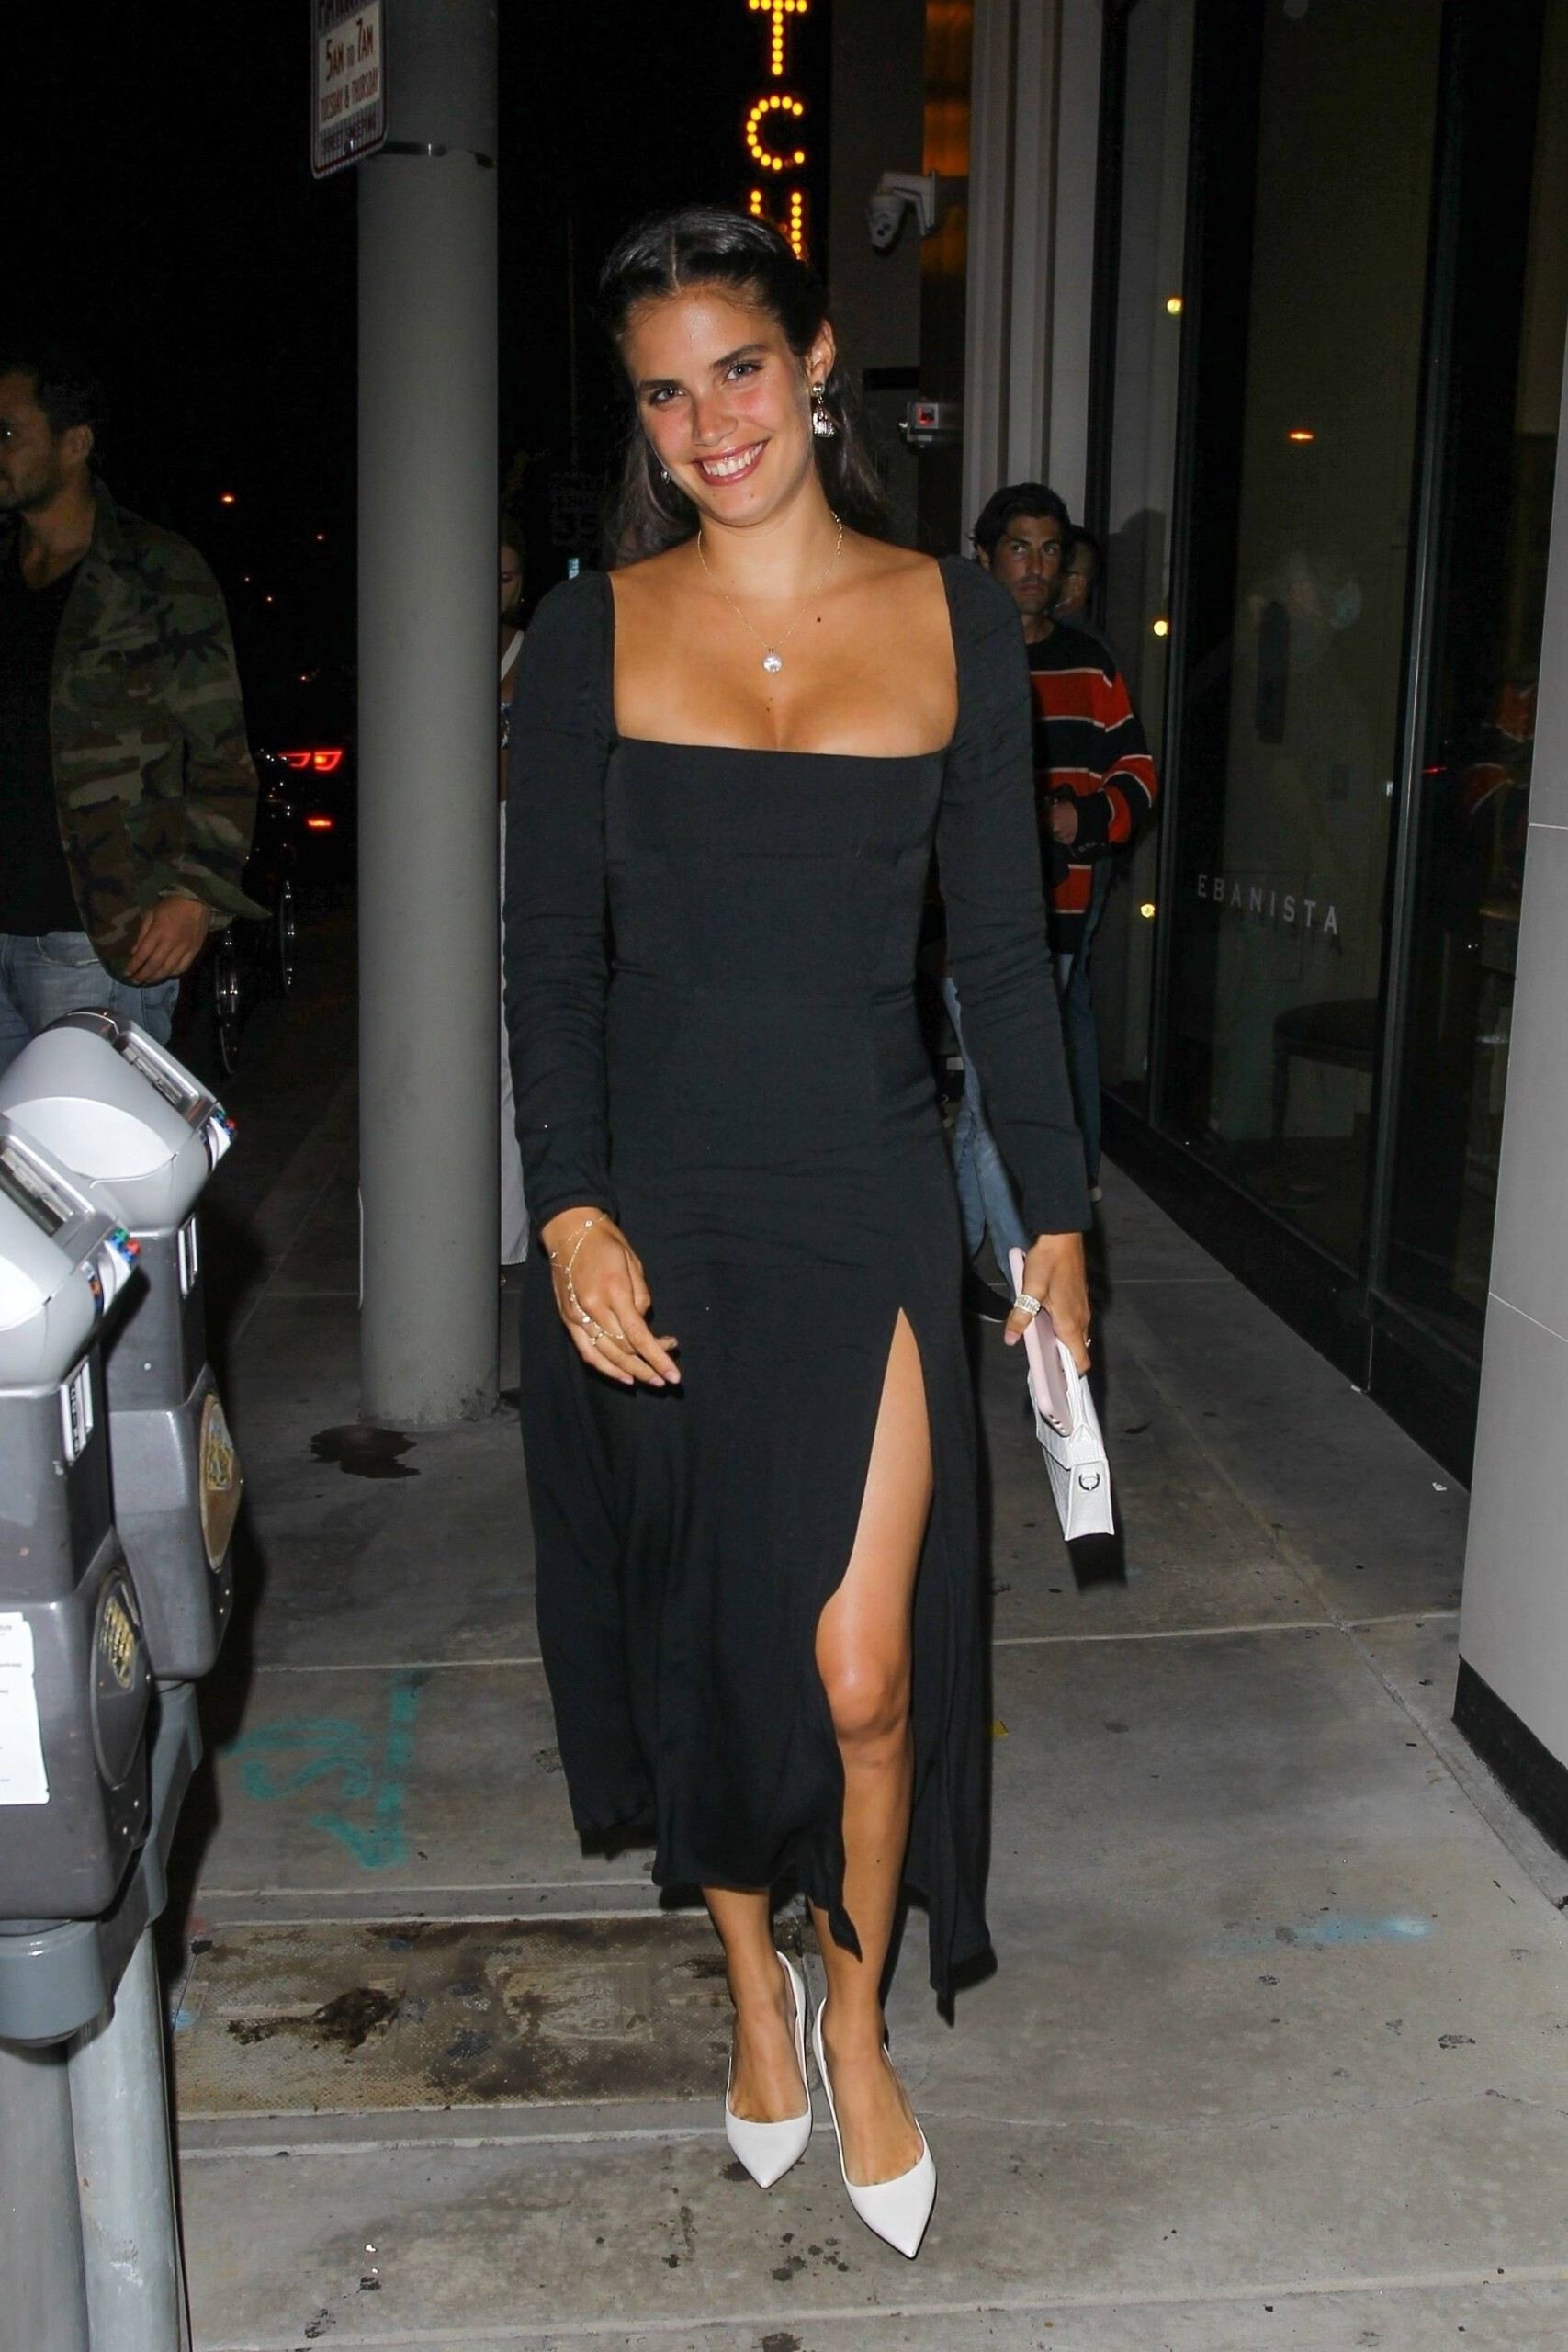 Sara Sampaio – Beautiful In Sexy Black Dress At Catch Restaurant In West Hollywood 0001